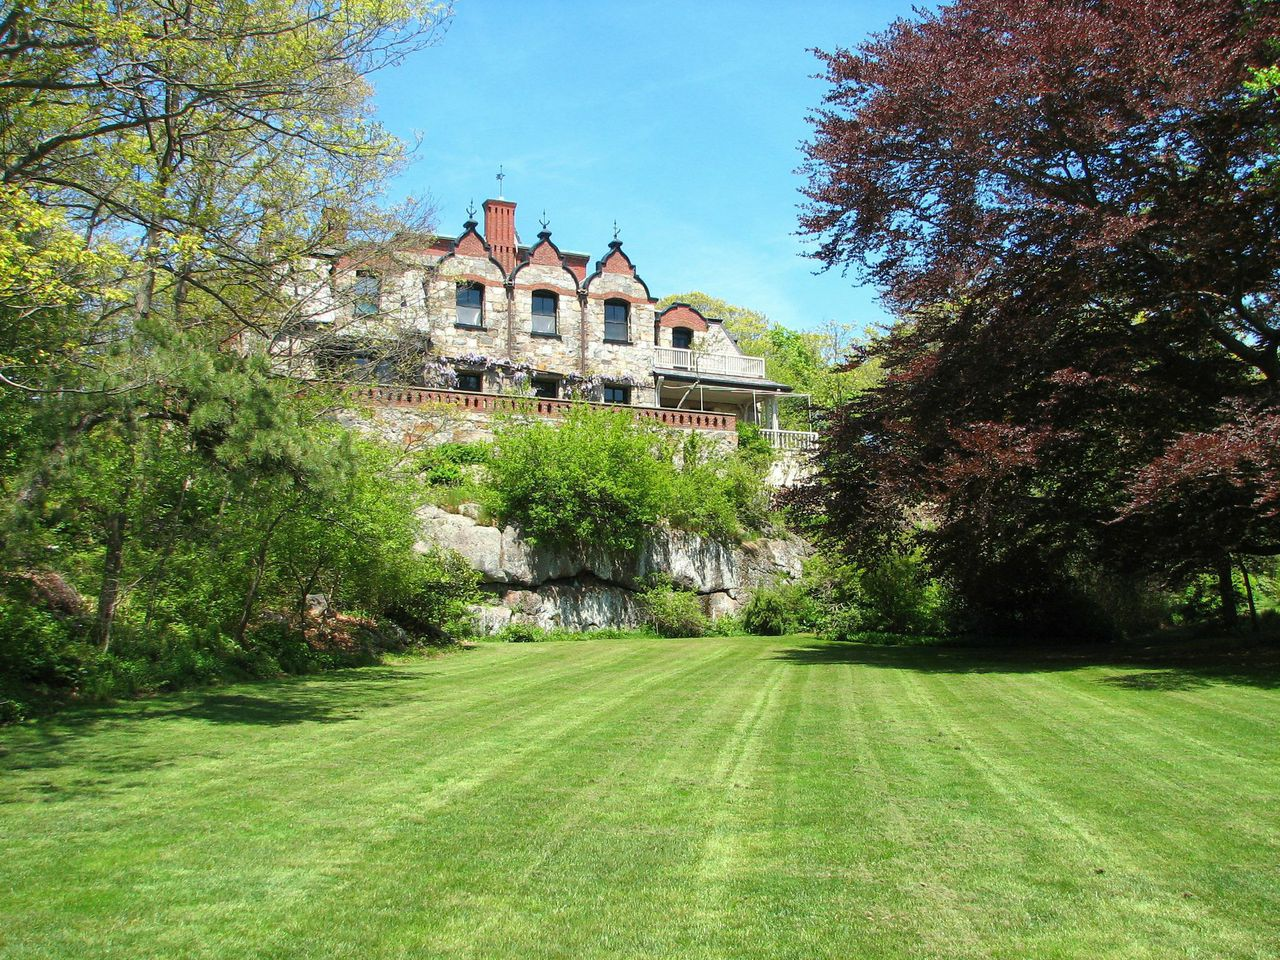 6 Historic Homes You Can Vacation In